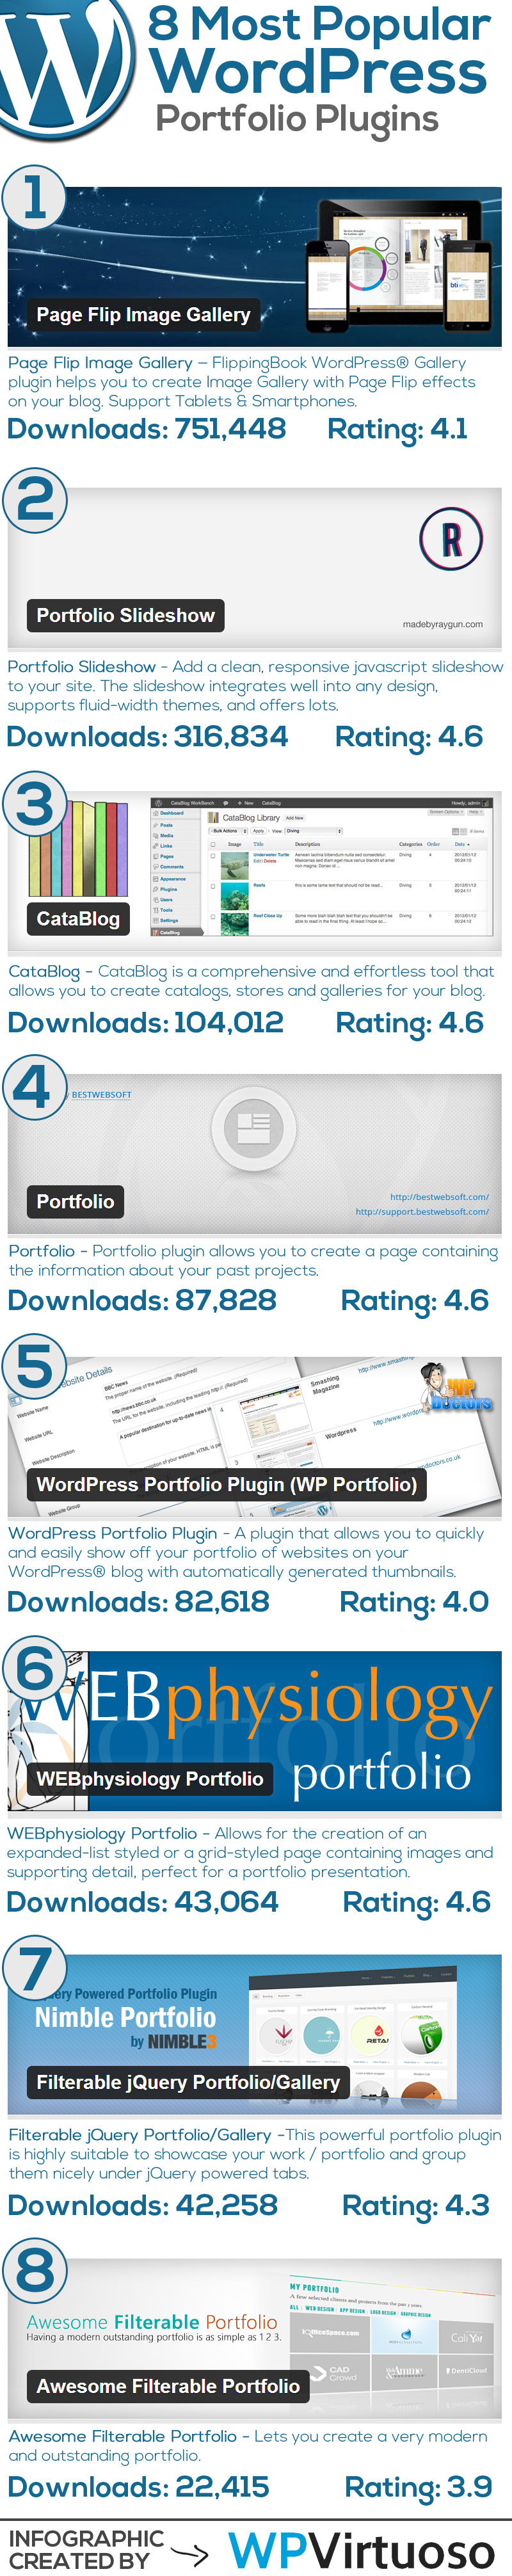 Best-Wordpress-Portfolio-Plugins-Infographic